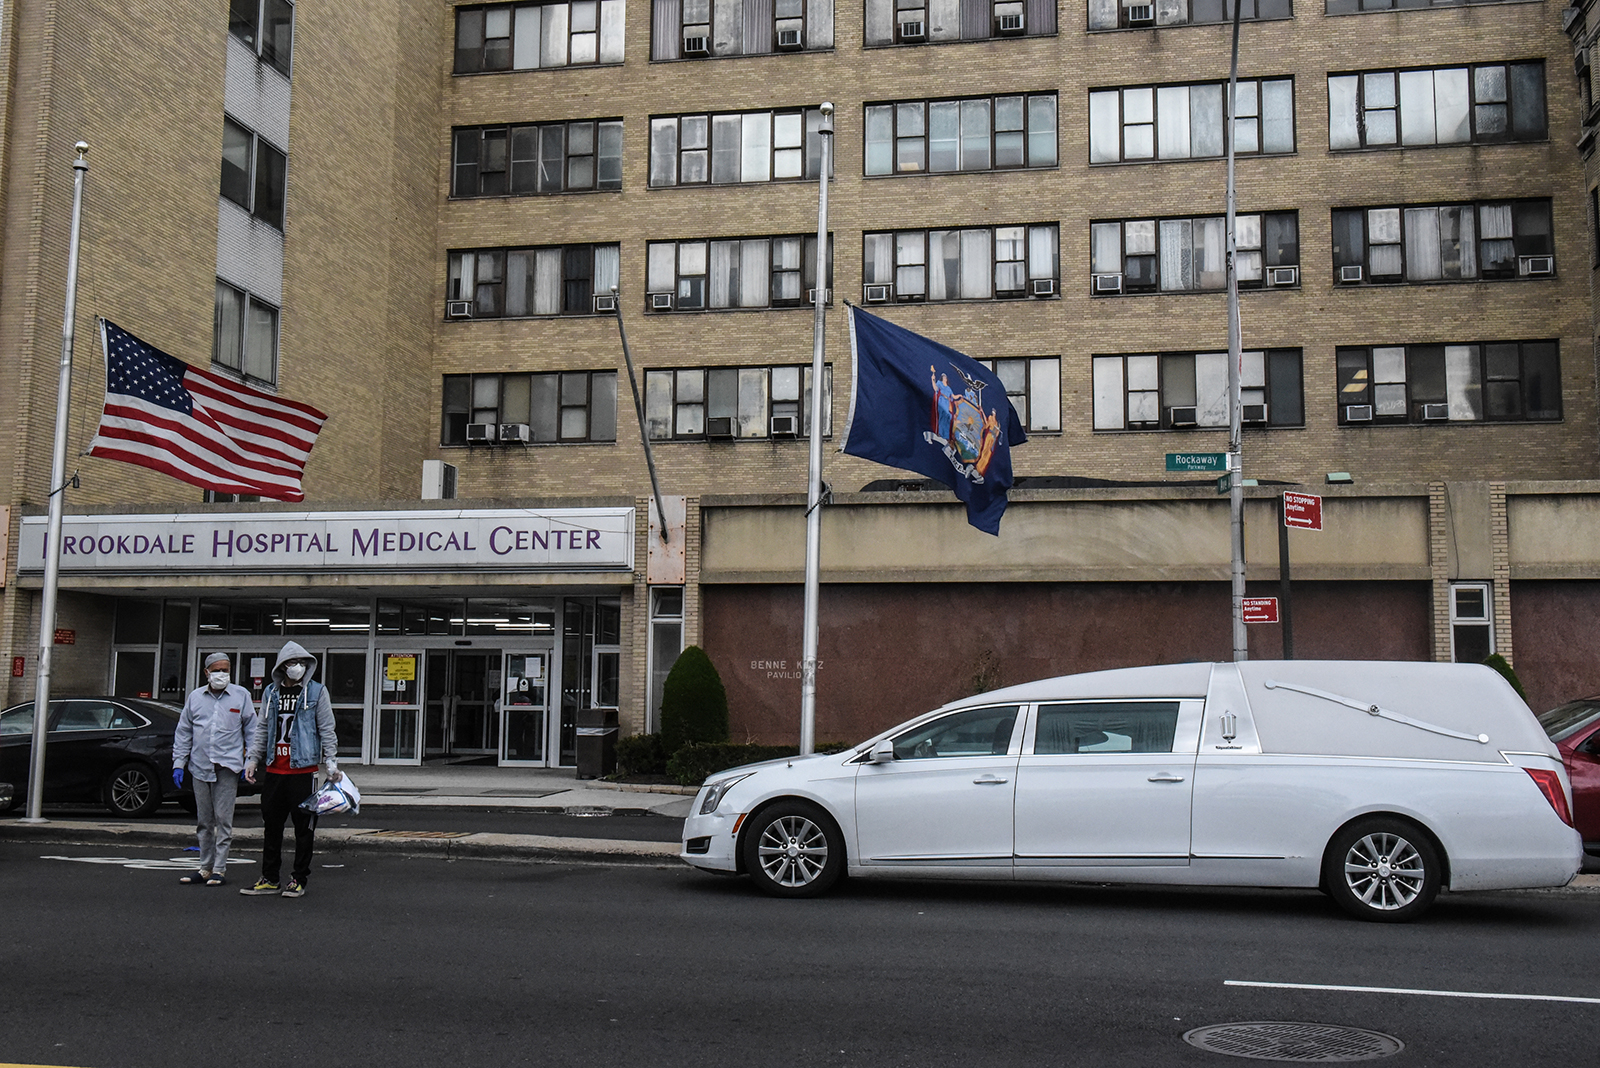 A white hearse stands outside the Brookdale Hospital Medical Center on April 27, in the Brooklyn borough in New York City.